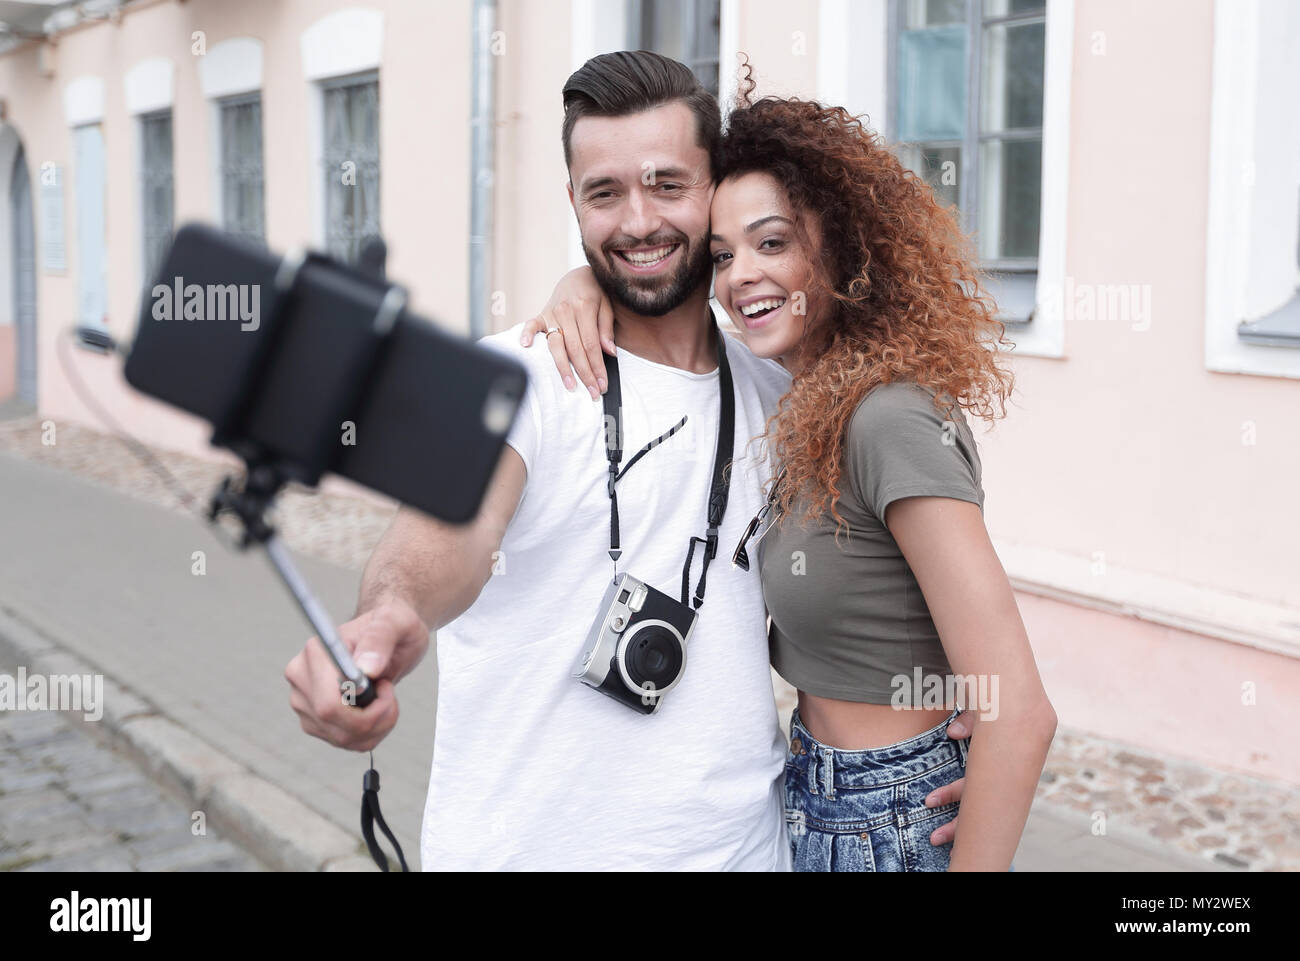 Happy traveling couple making selfie, romantic mood. - Stock Image